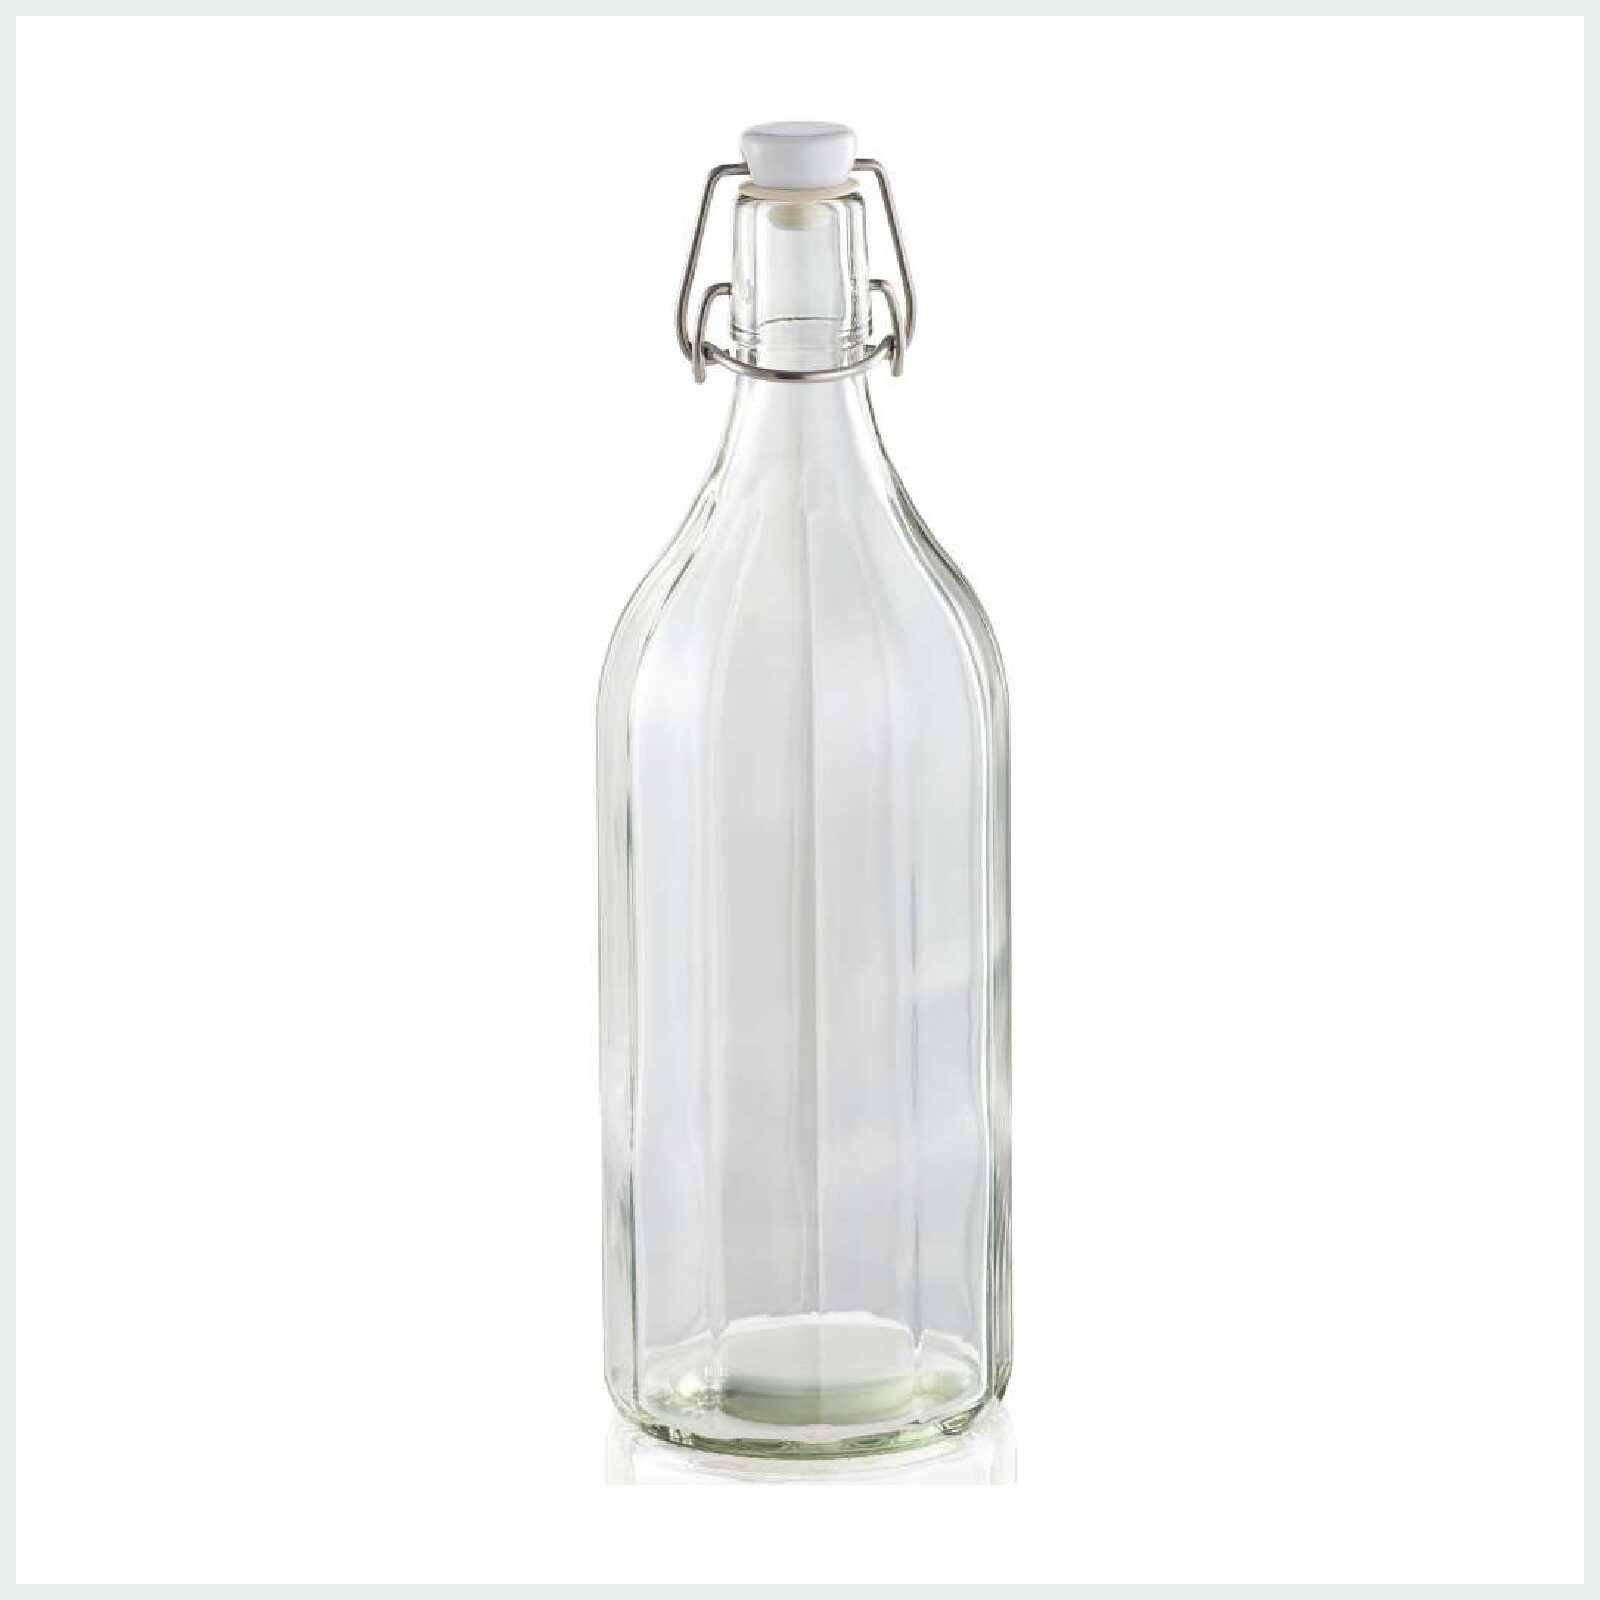 Leifheit preserve bottle with swing top closure and faceted design. Ideal for cordials and juices.